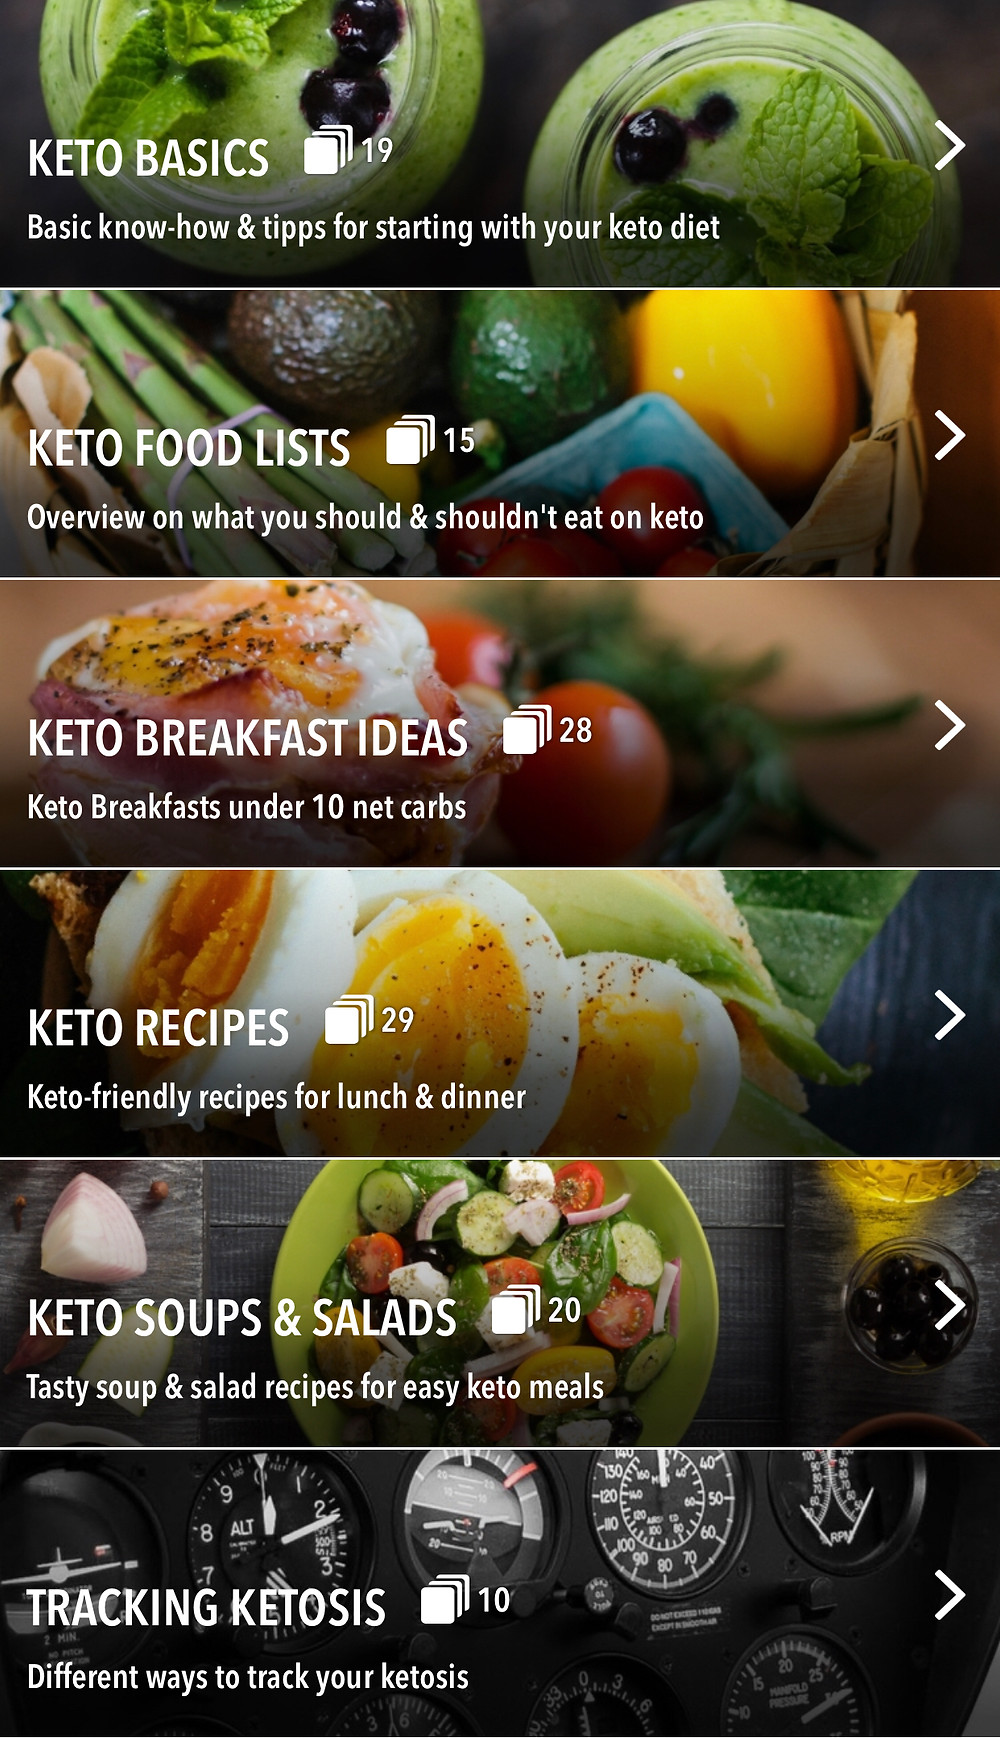 The App called Keto Diet Recipes